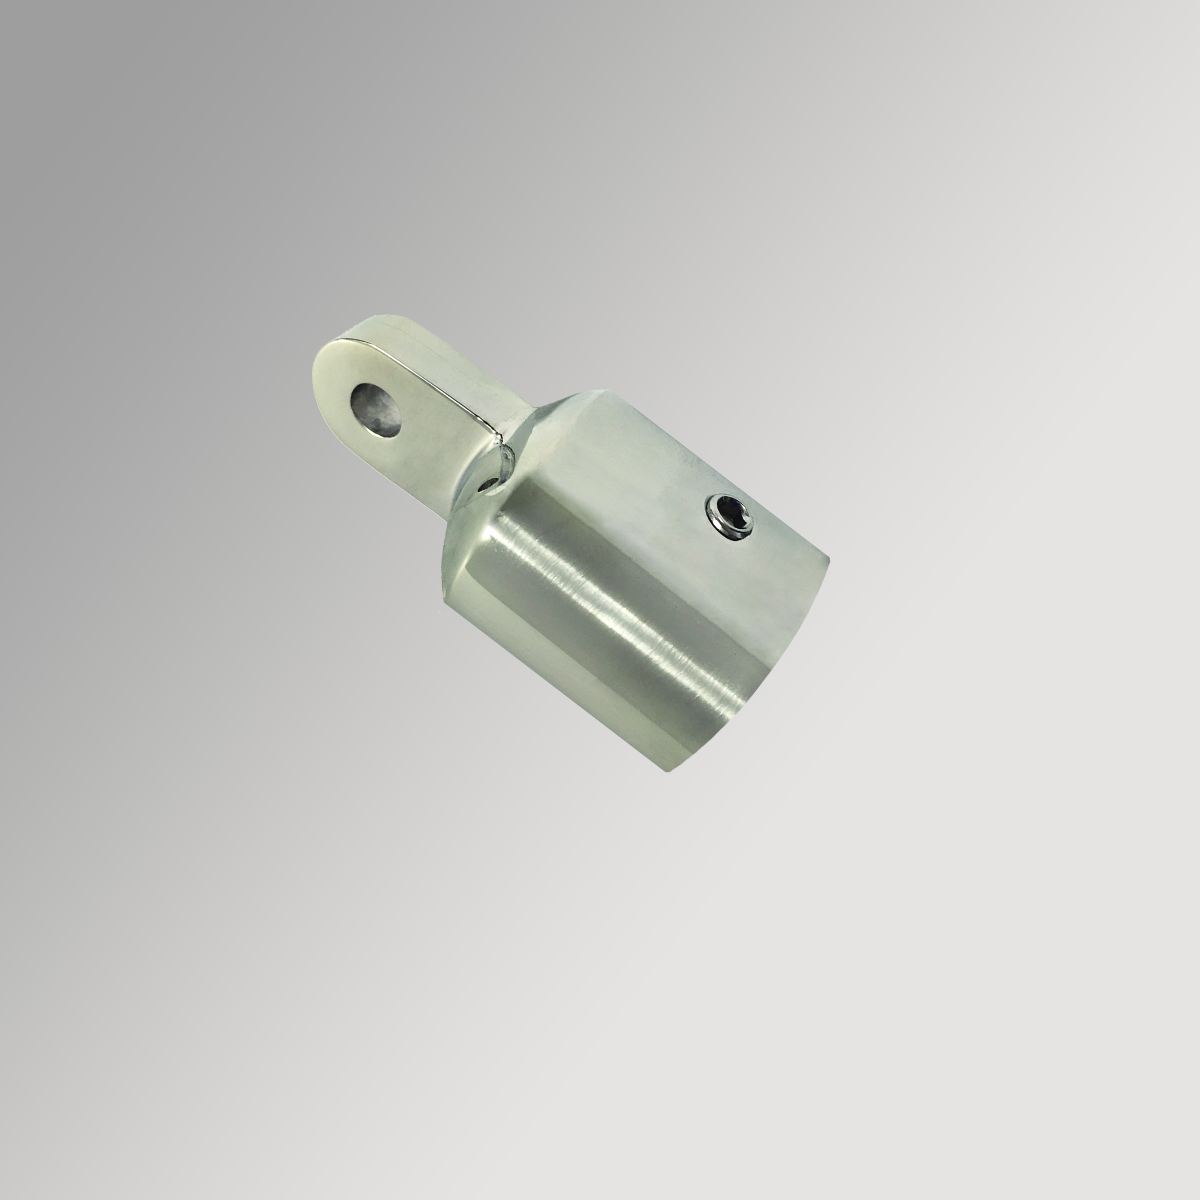 Eye End 25mm - Stainless Steel